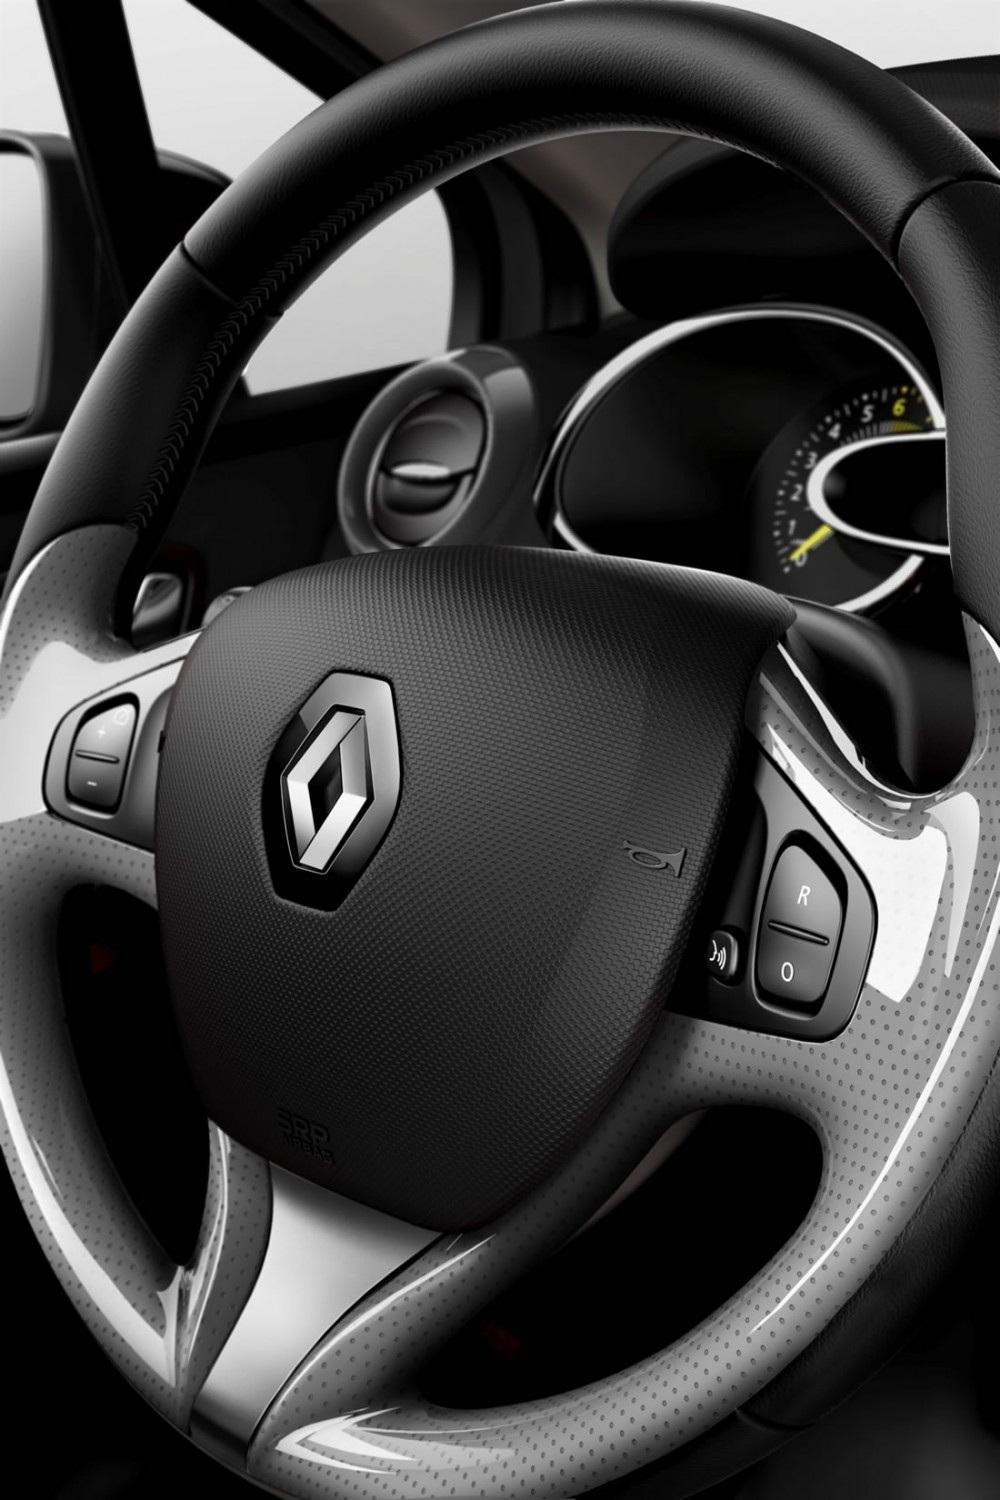 clio iv topic officiel page 331 clio clio rs renault forum marques. Black Bedroom Furniture Sets. Home Design Ideas